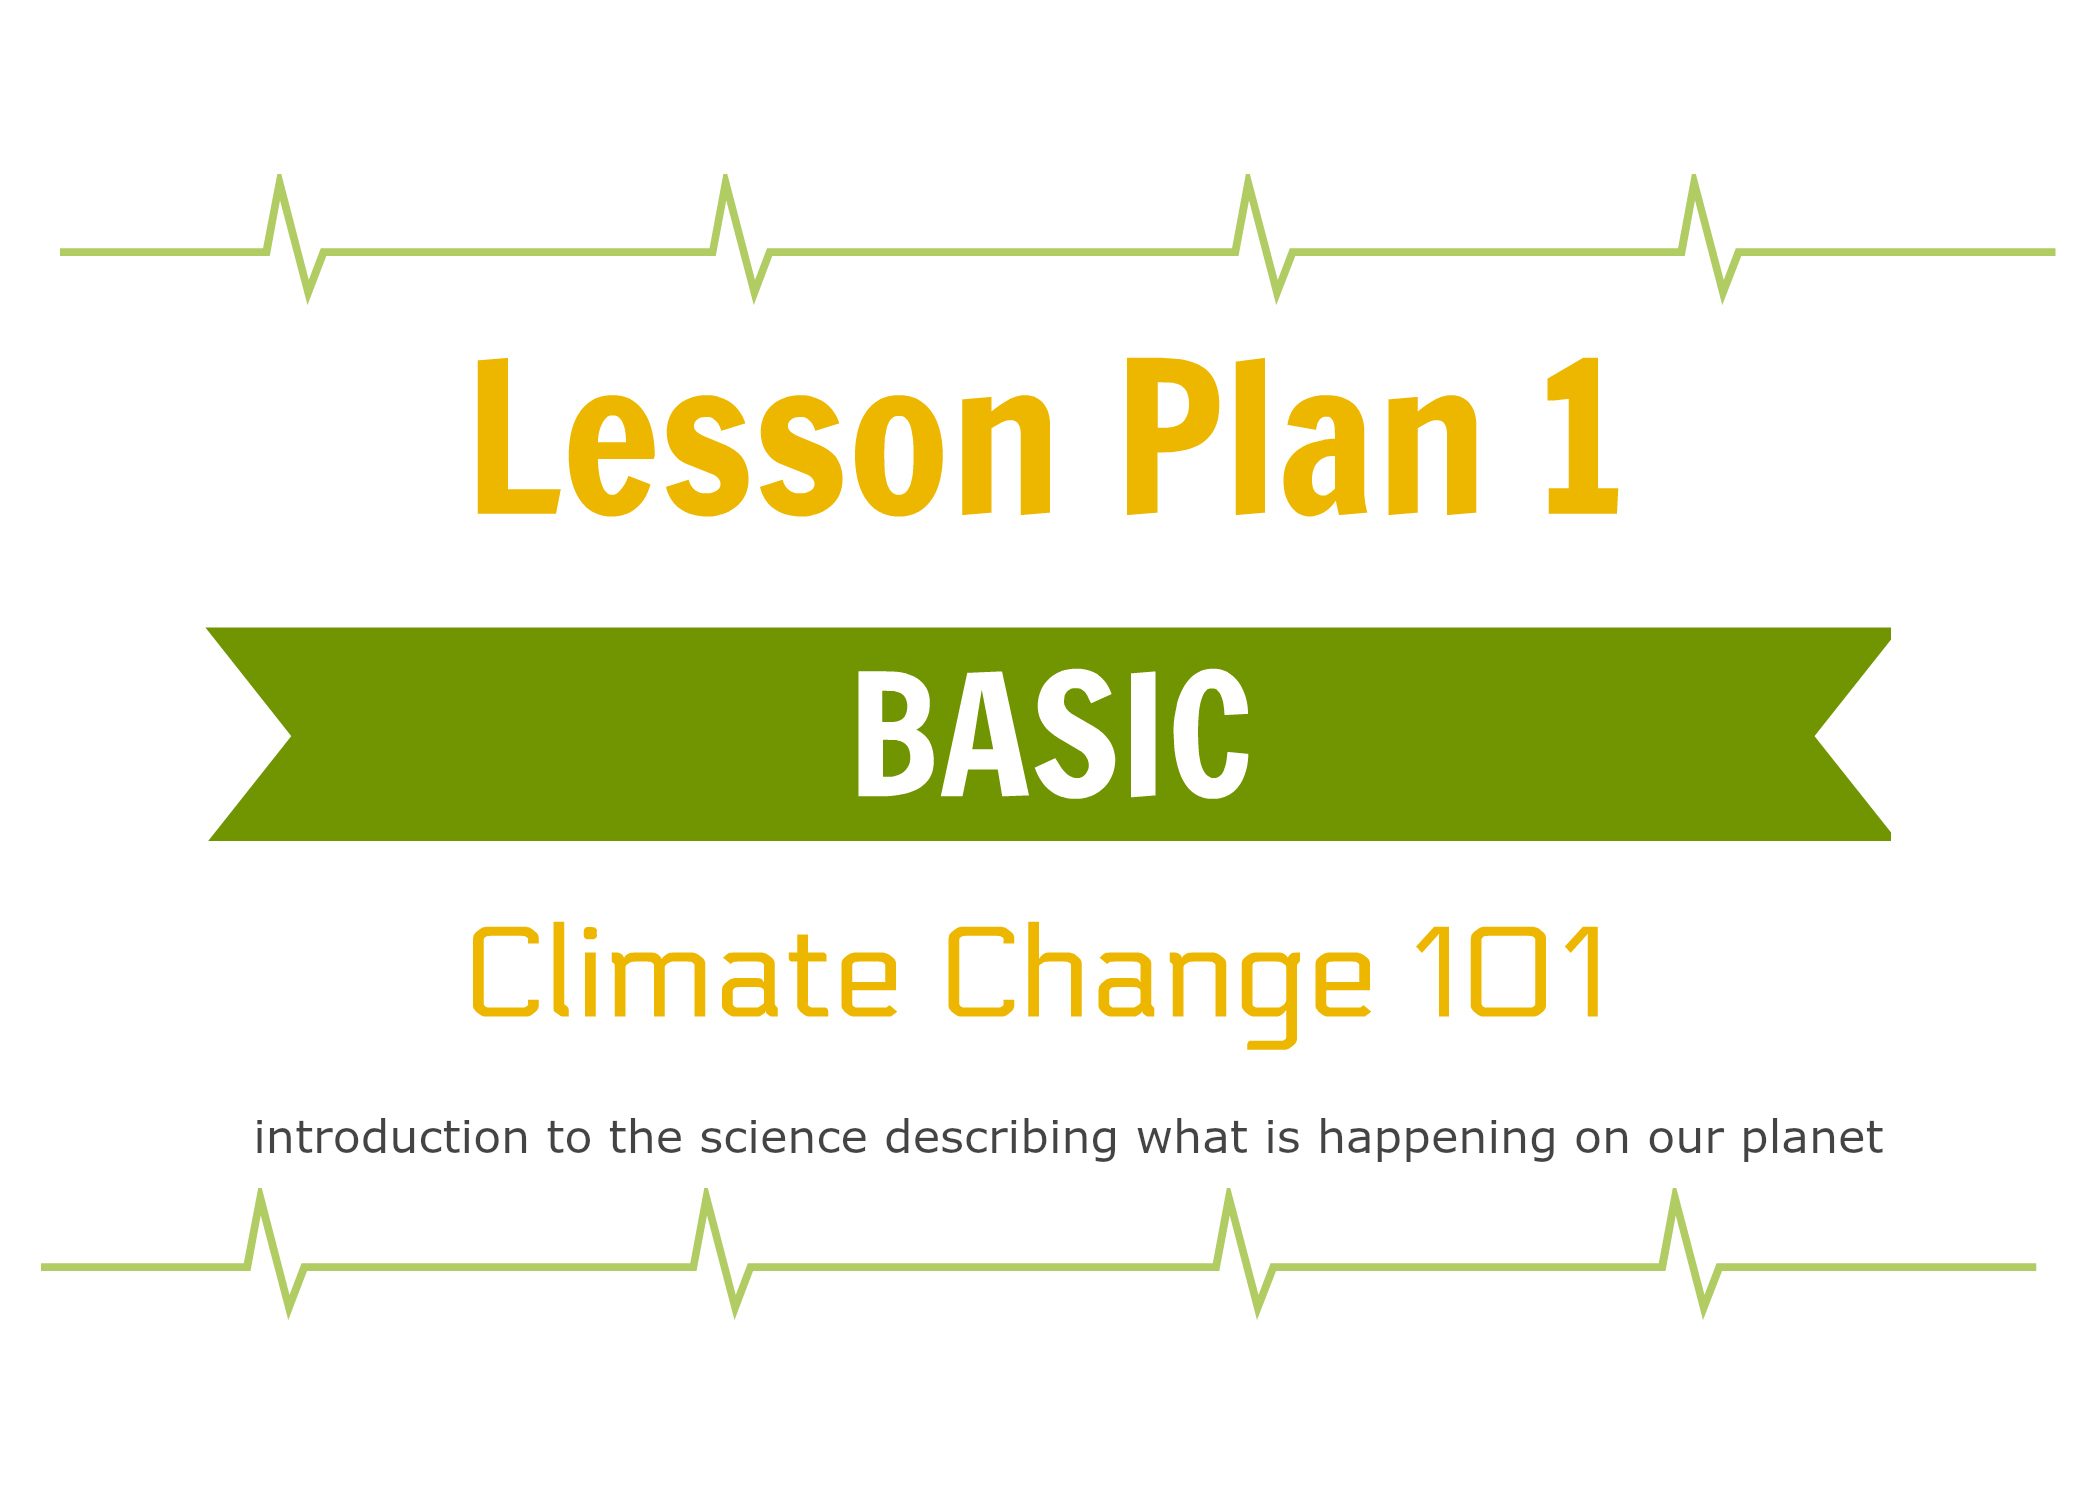 - Intended for all students who are not familiar with or need a refresher on the topic of climate change.